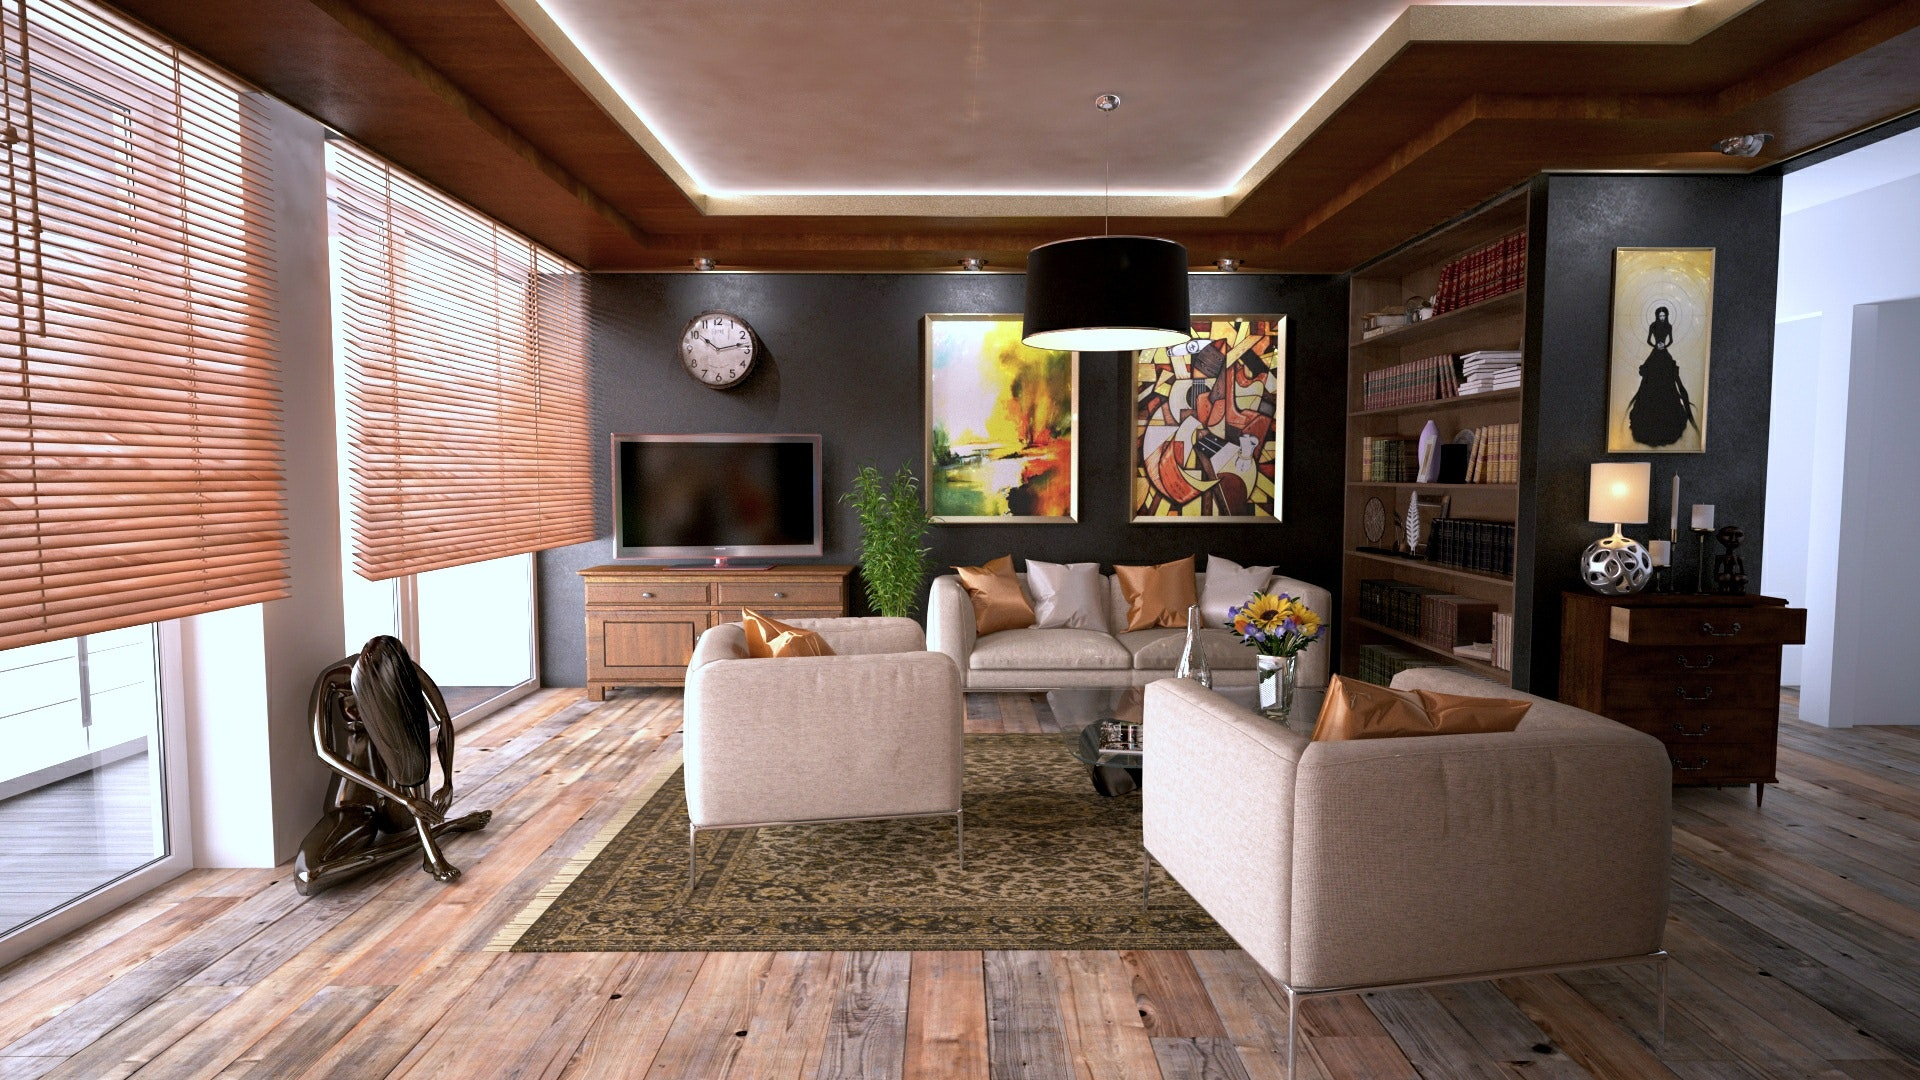 Marvelous Cozy Interiors And Astonishing Architecture, Youu0027ll Find Pictures Of  Different Home Settings Here. All Our Photos Are Of High Quality, So Go  Ahead U0026 Use ...